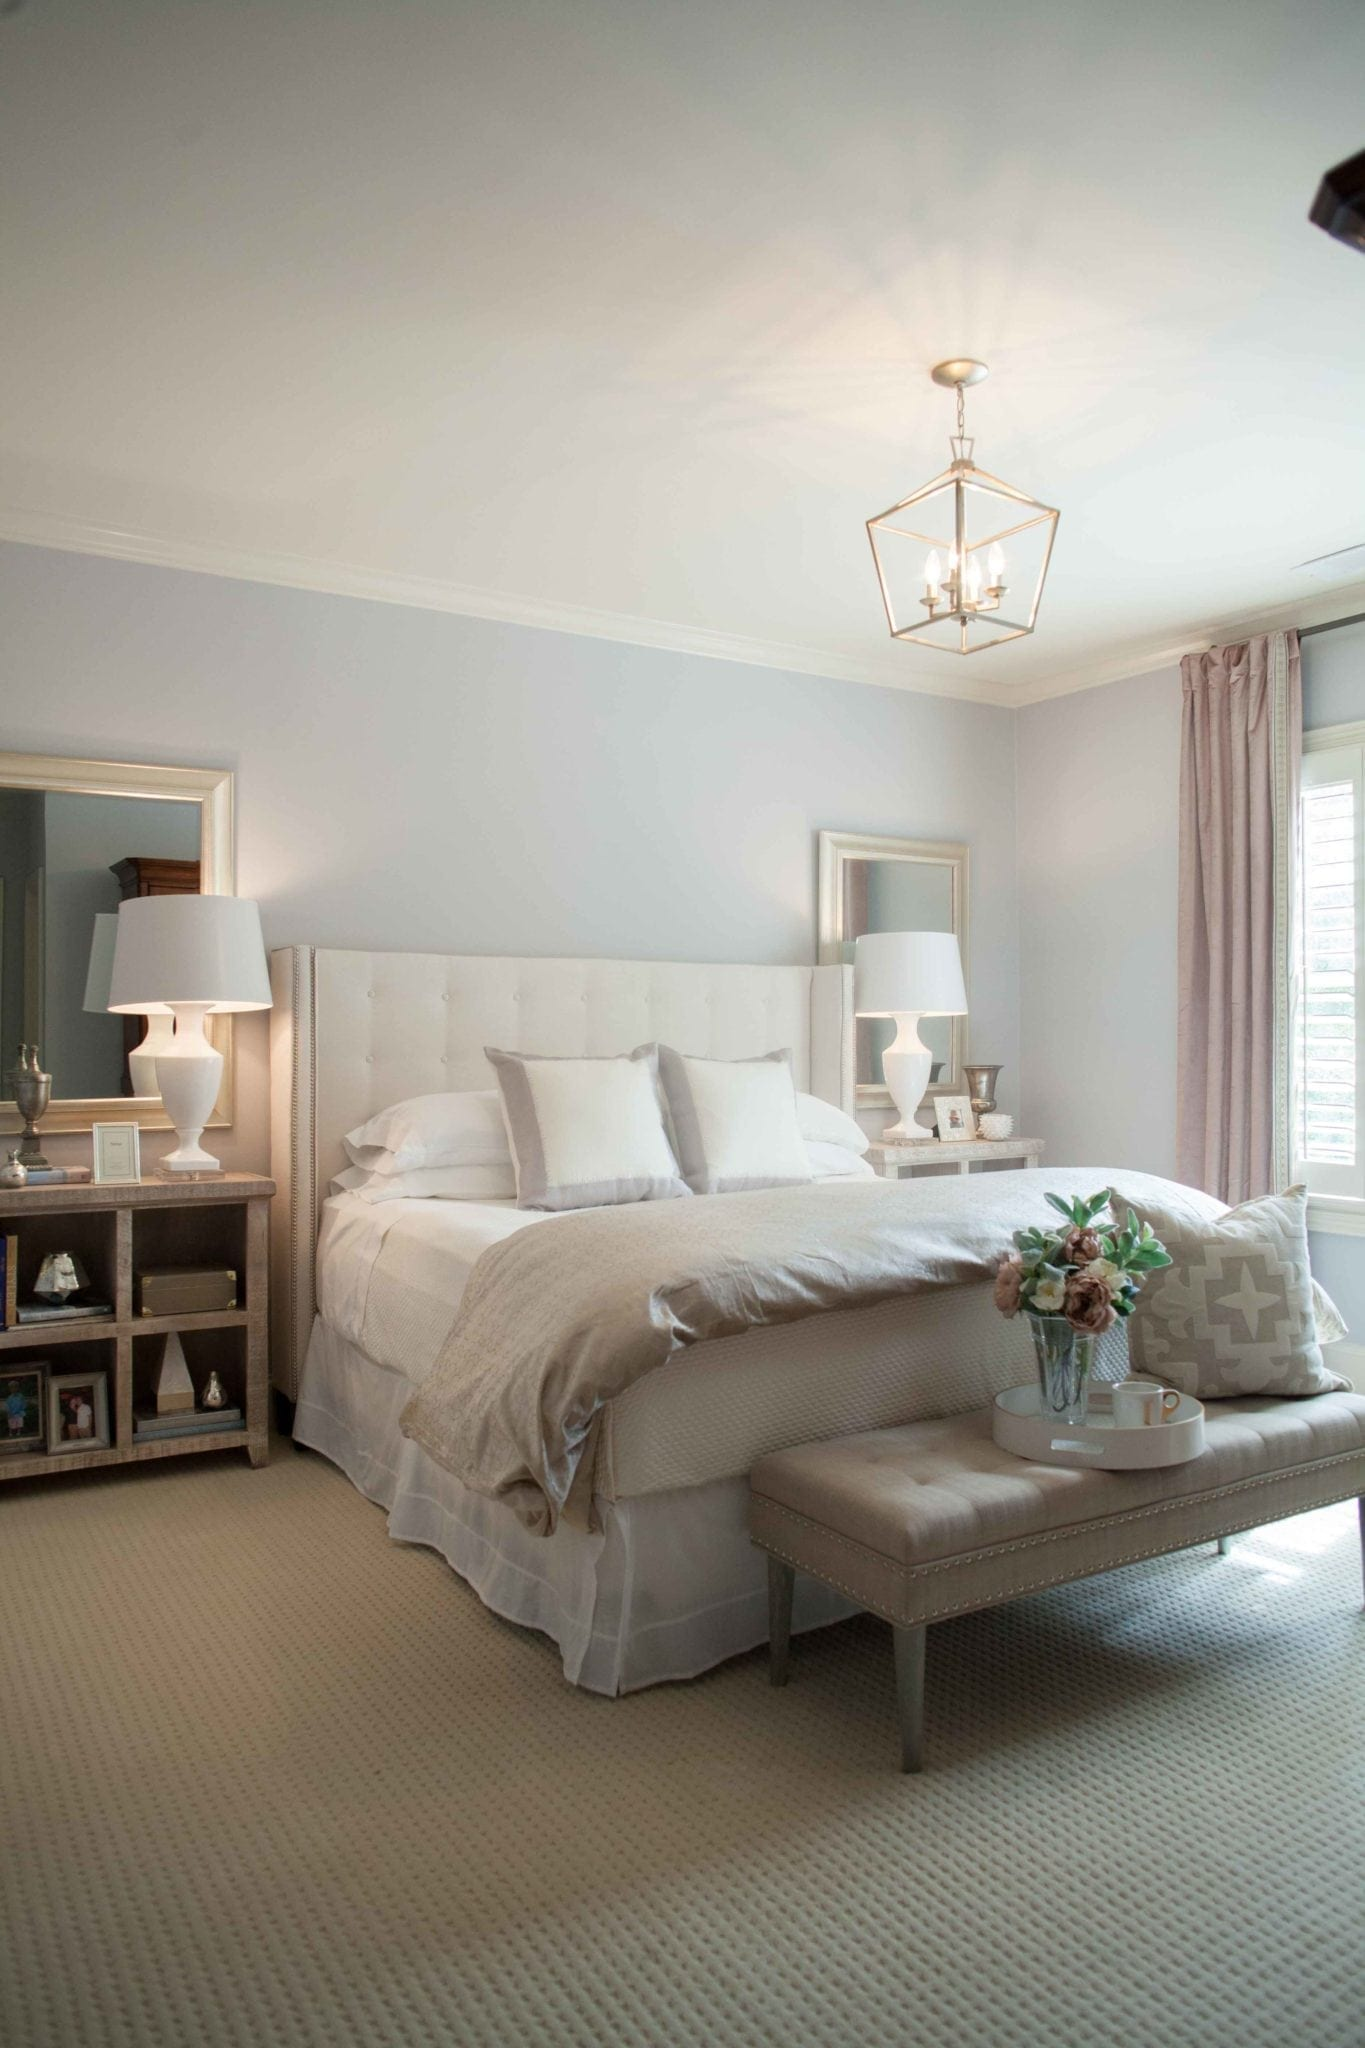 Neutral bedroom decor in shades of purple, lavender and gray.